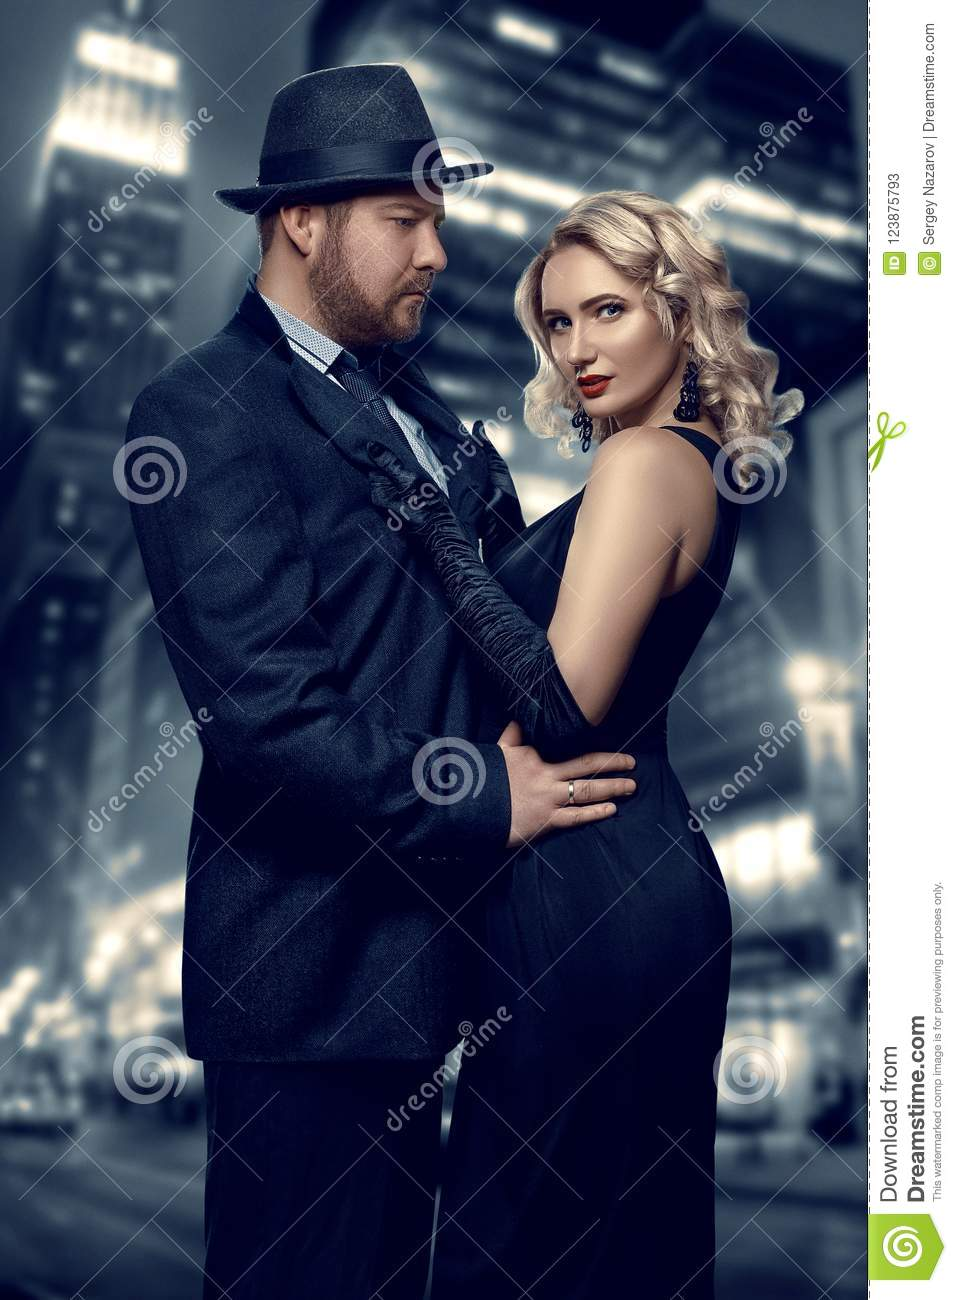 Film noir. Detective man in a raincoat and hat and a dangerous woman with red lips in black dress. Couple stands against